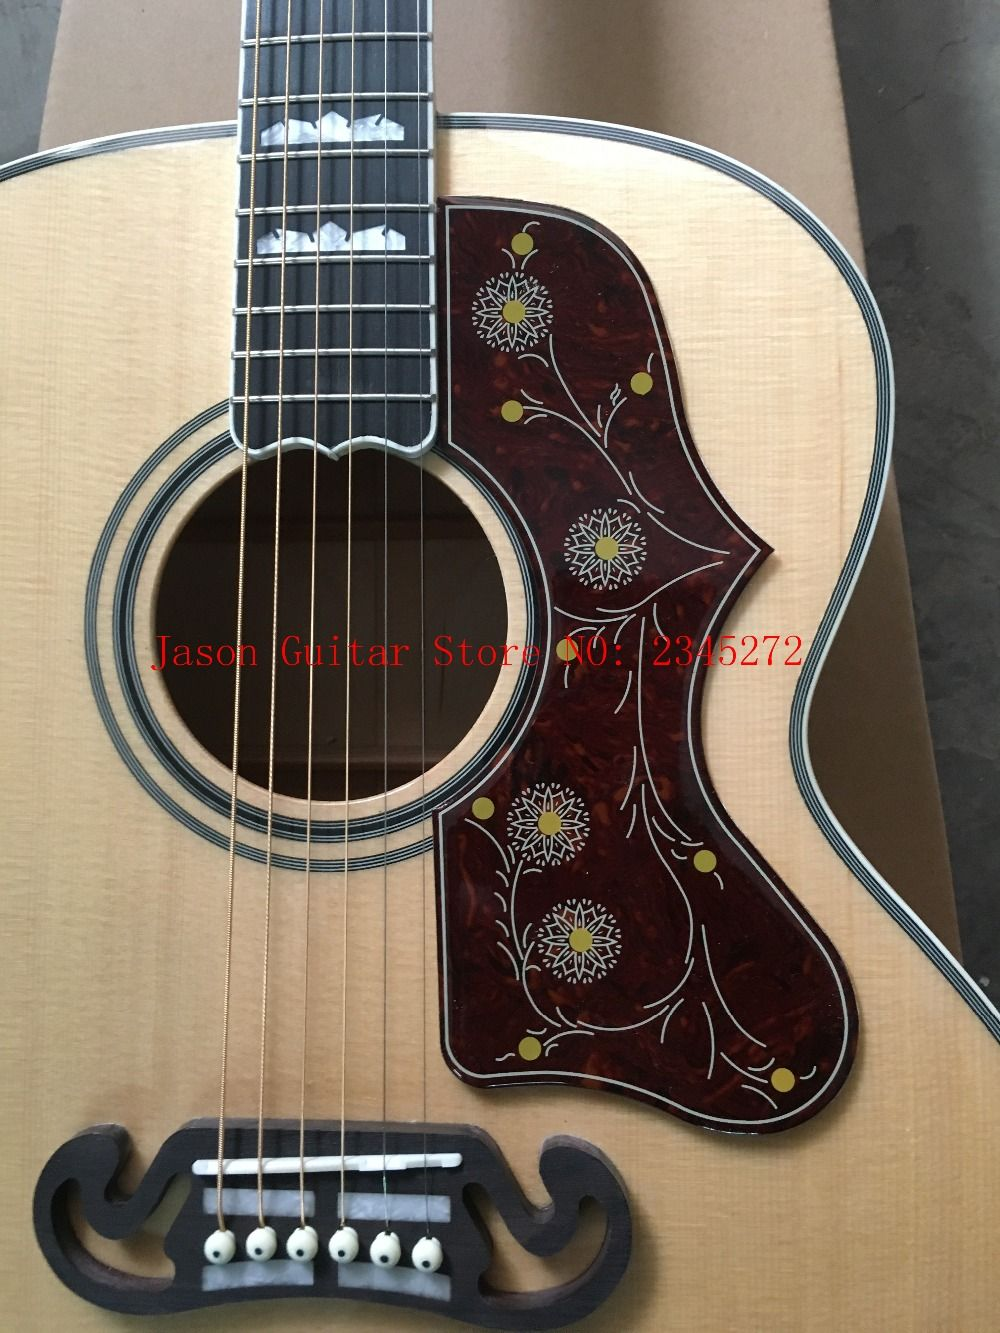 2018 New + Factory + Chibson J200 flame maple acoustic guitar J200 electric acoustic Deluxe guitar spruce top acoustic+customize